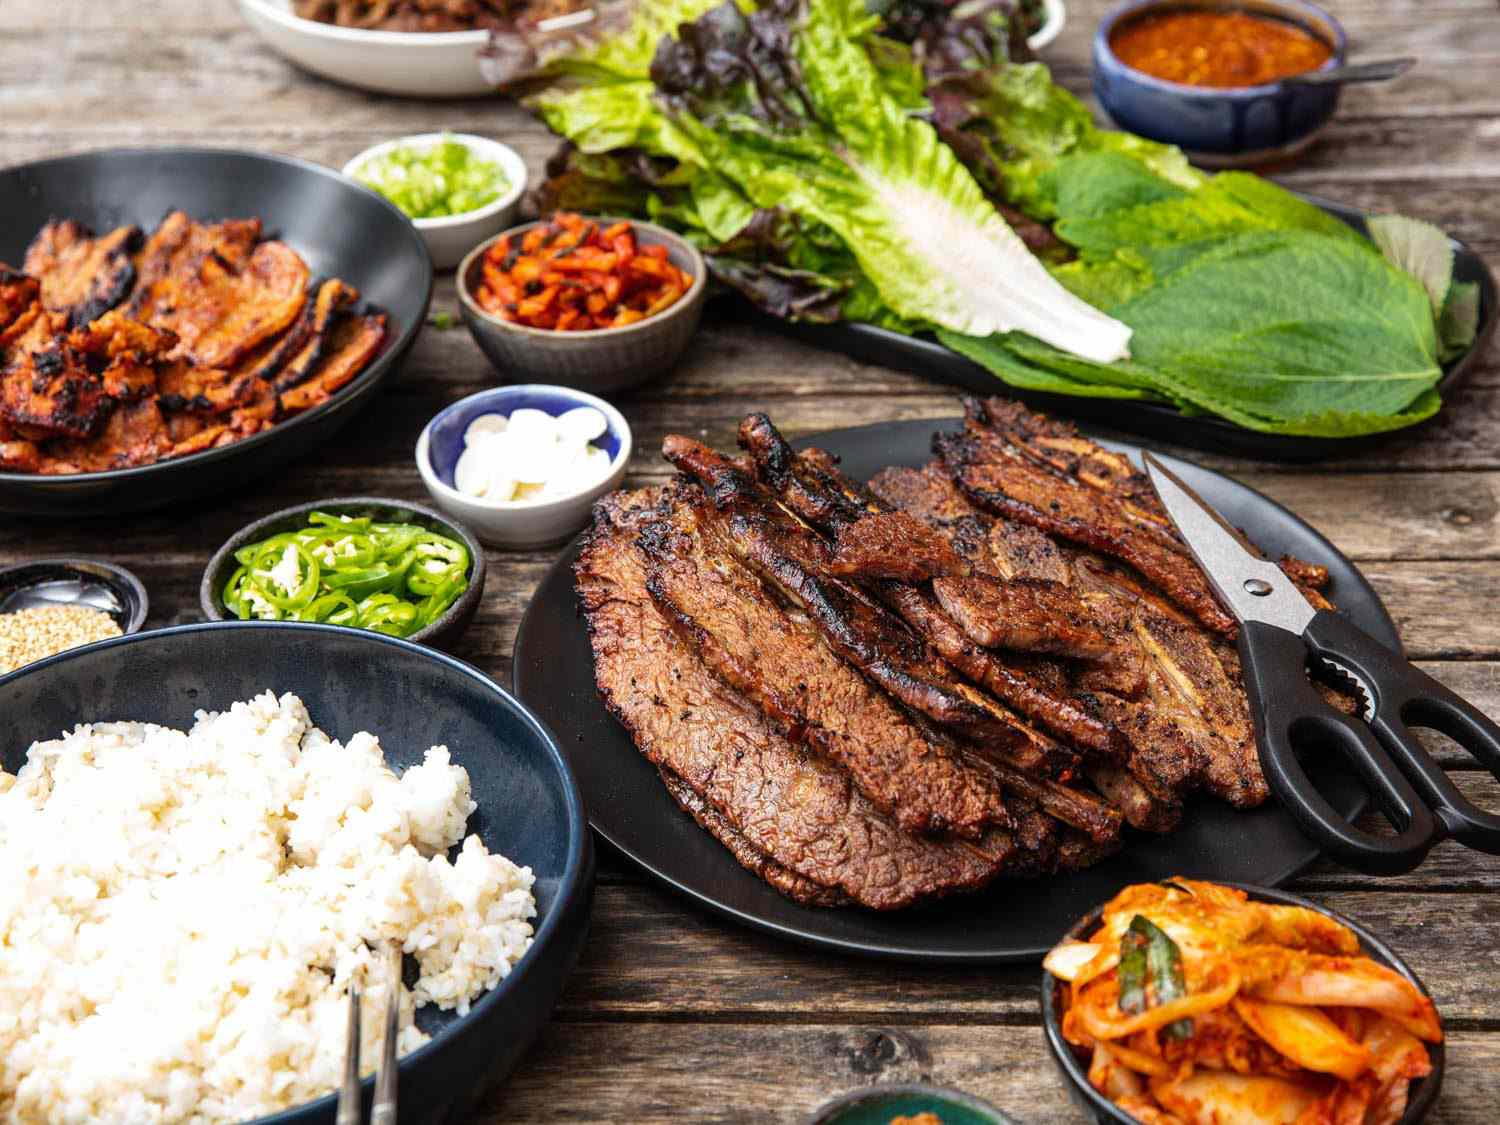 Side view of a table set with a Korean barbecue spread, with a plate of beef galbi in the foreground.